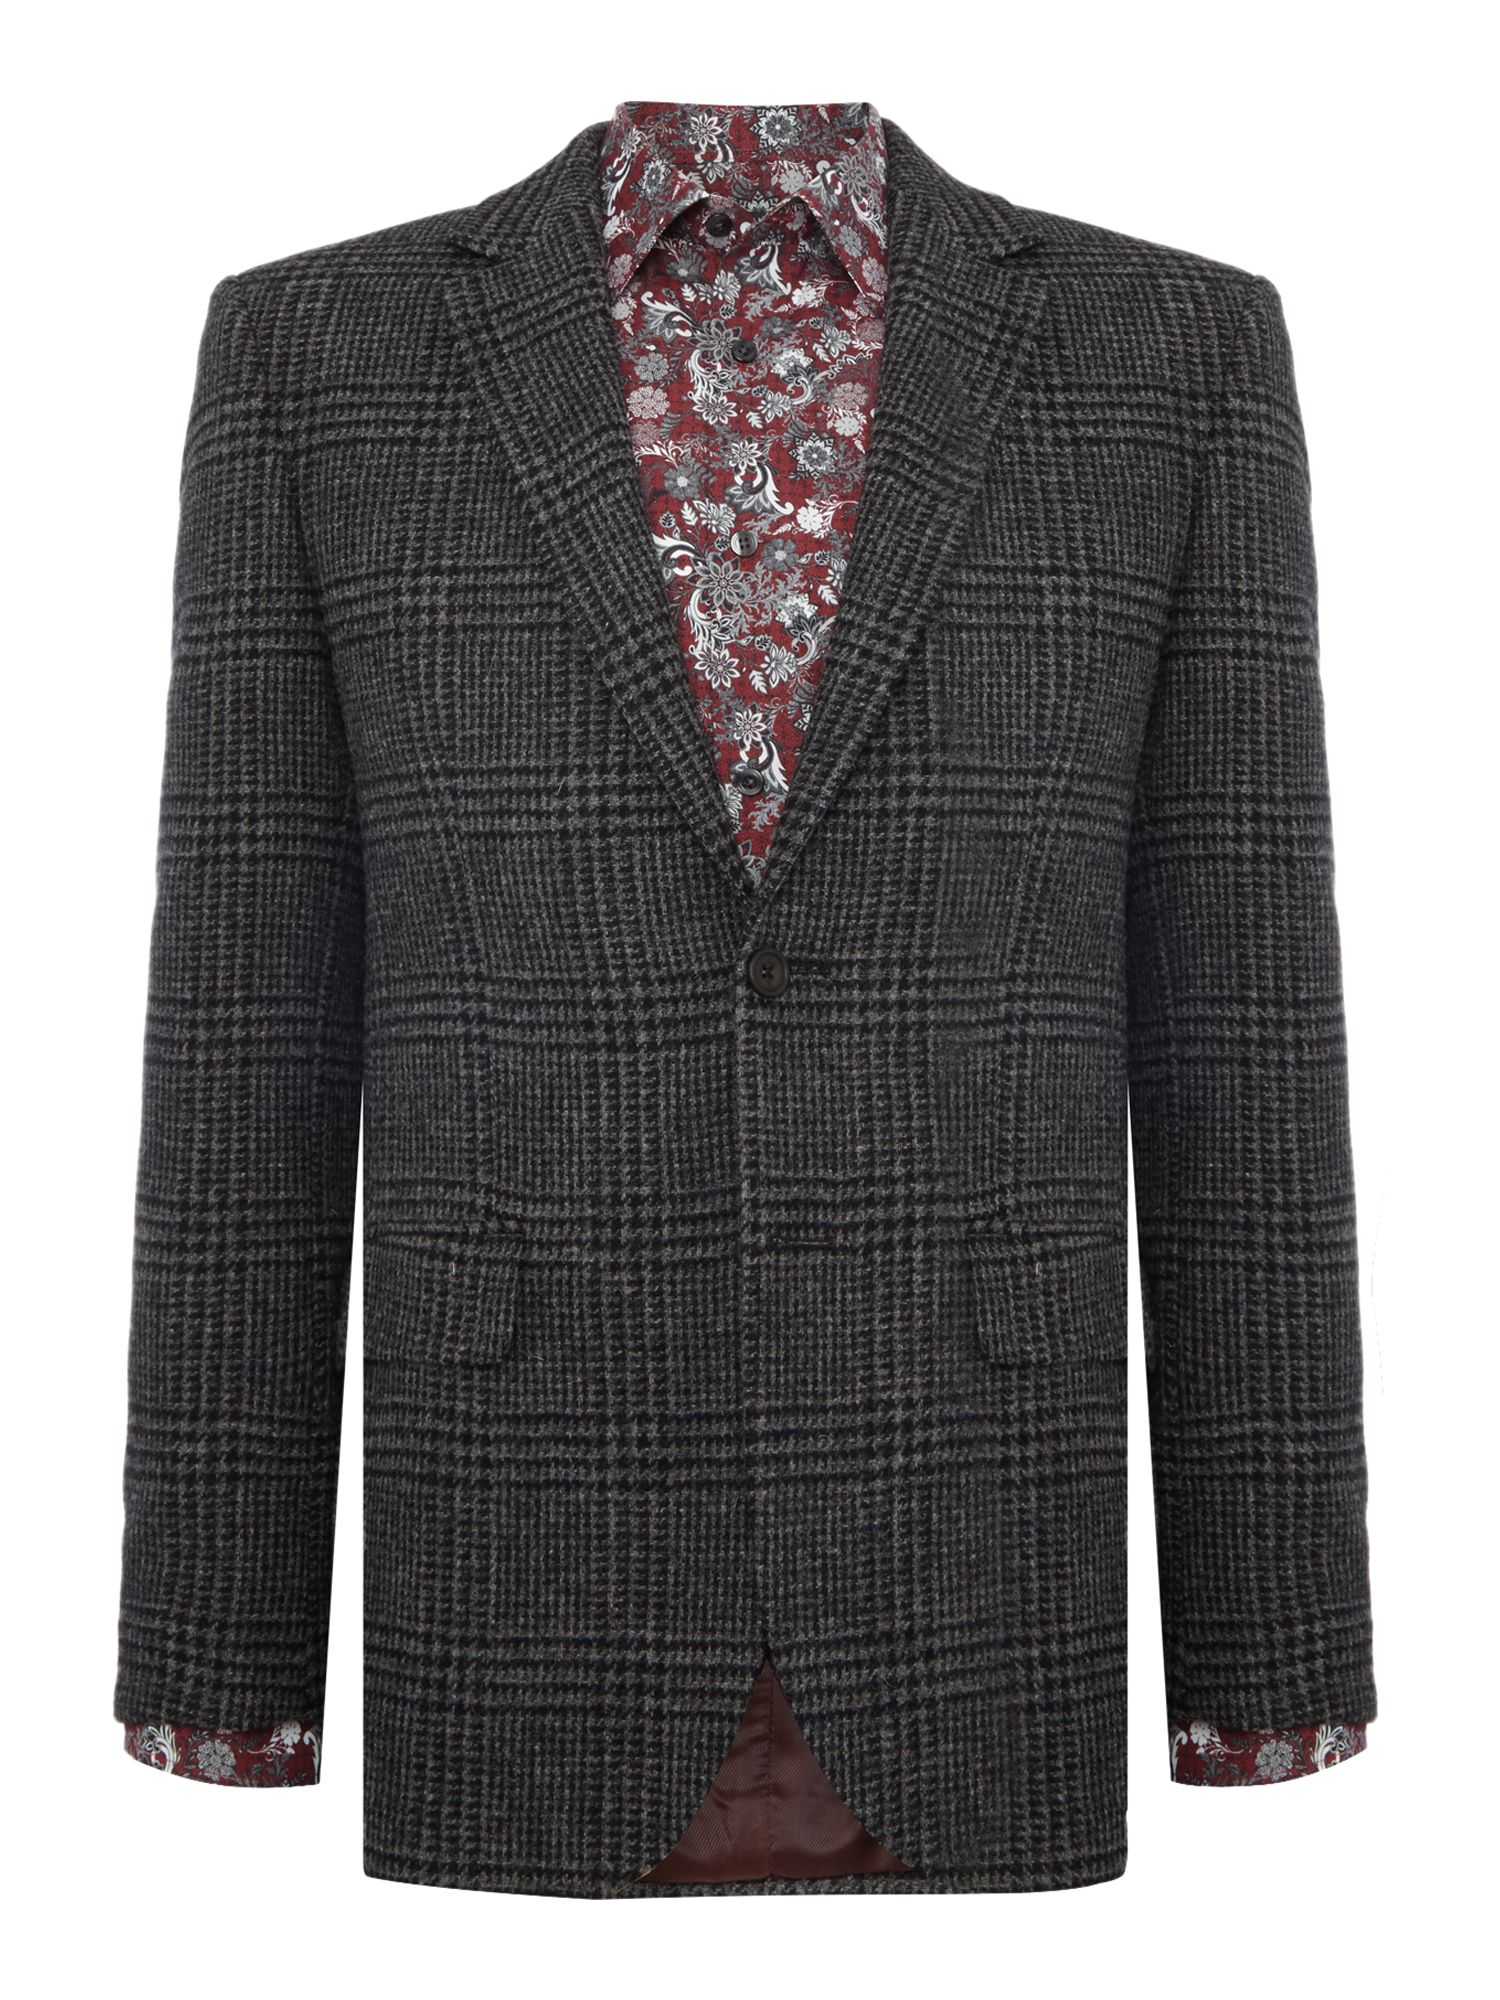 New & Lingwood Men's New & Lingwood Gainsborough Lambswool POW check blazer, Grey